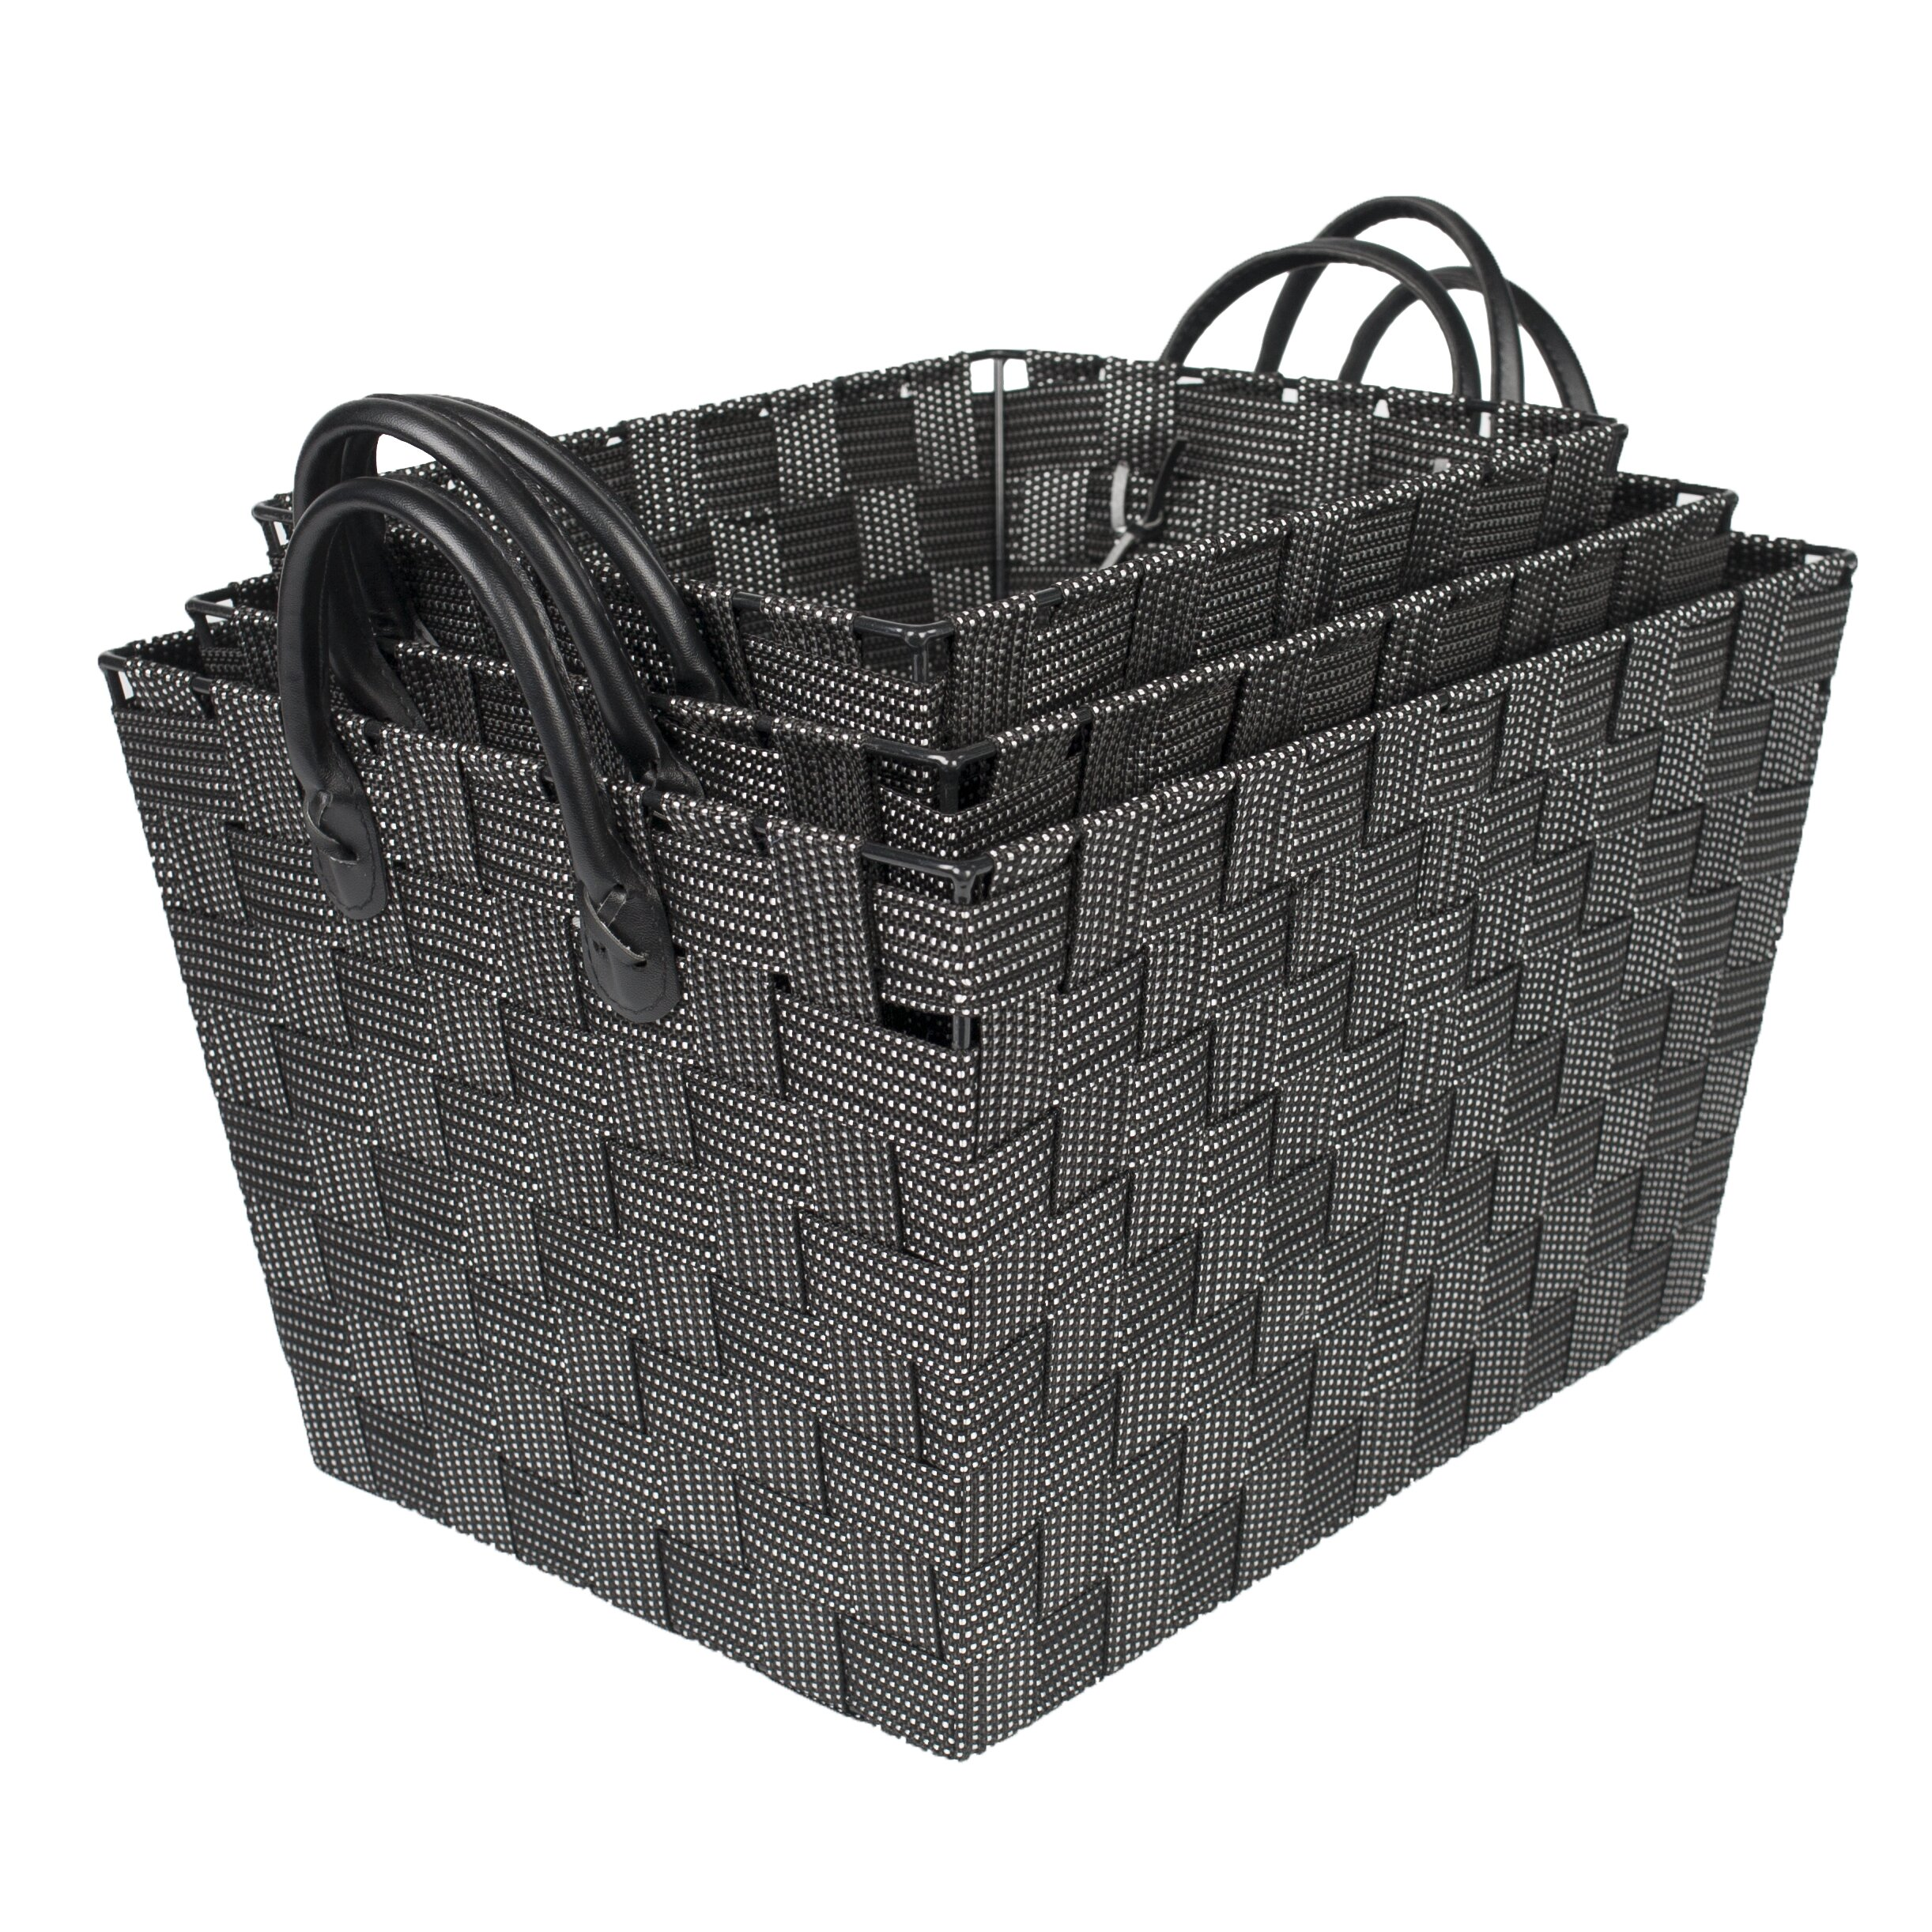 Woven Storage Baskets With Handles : Sweet home collection piece woven storage baskets with